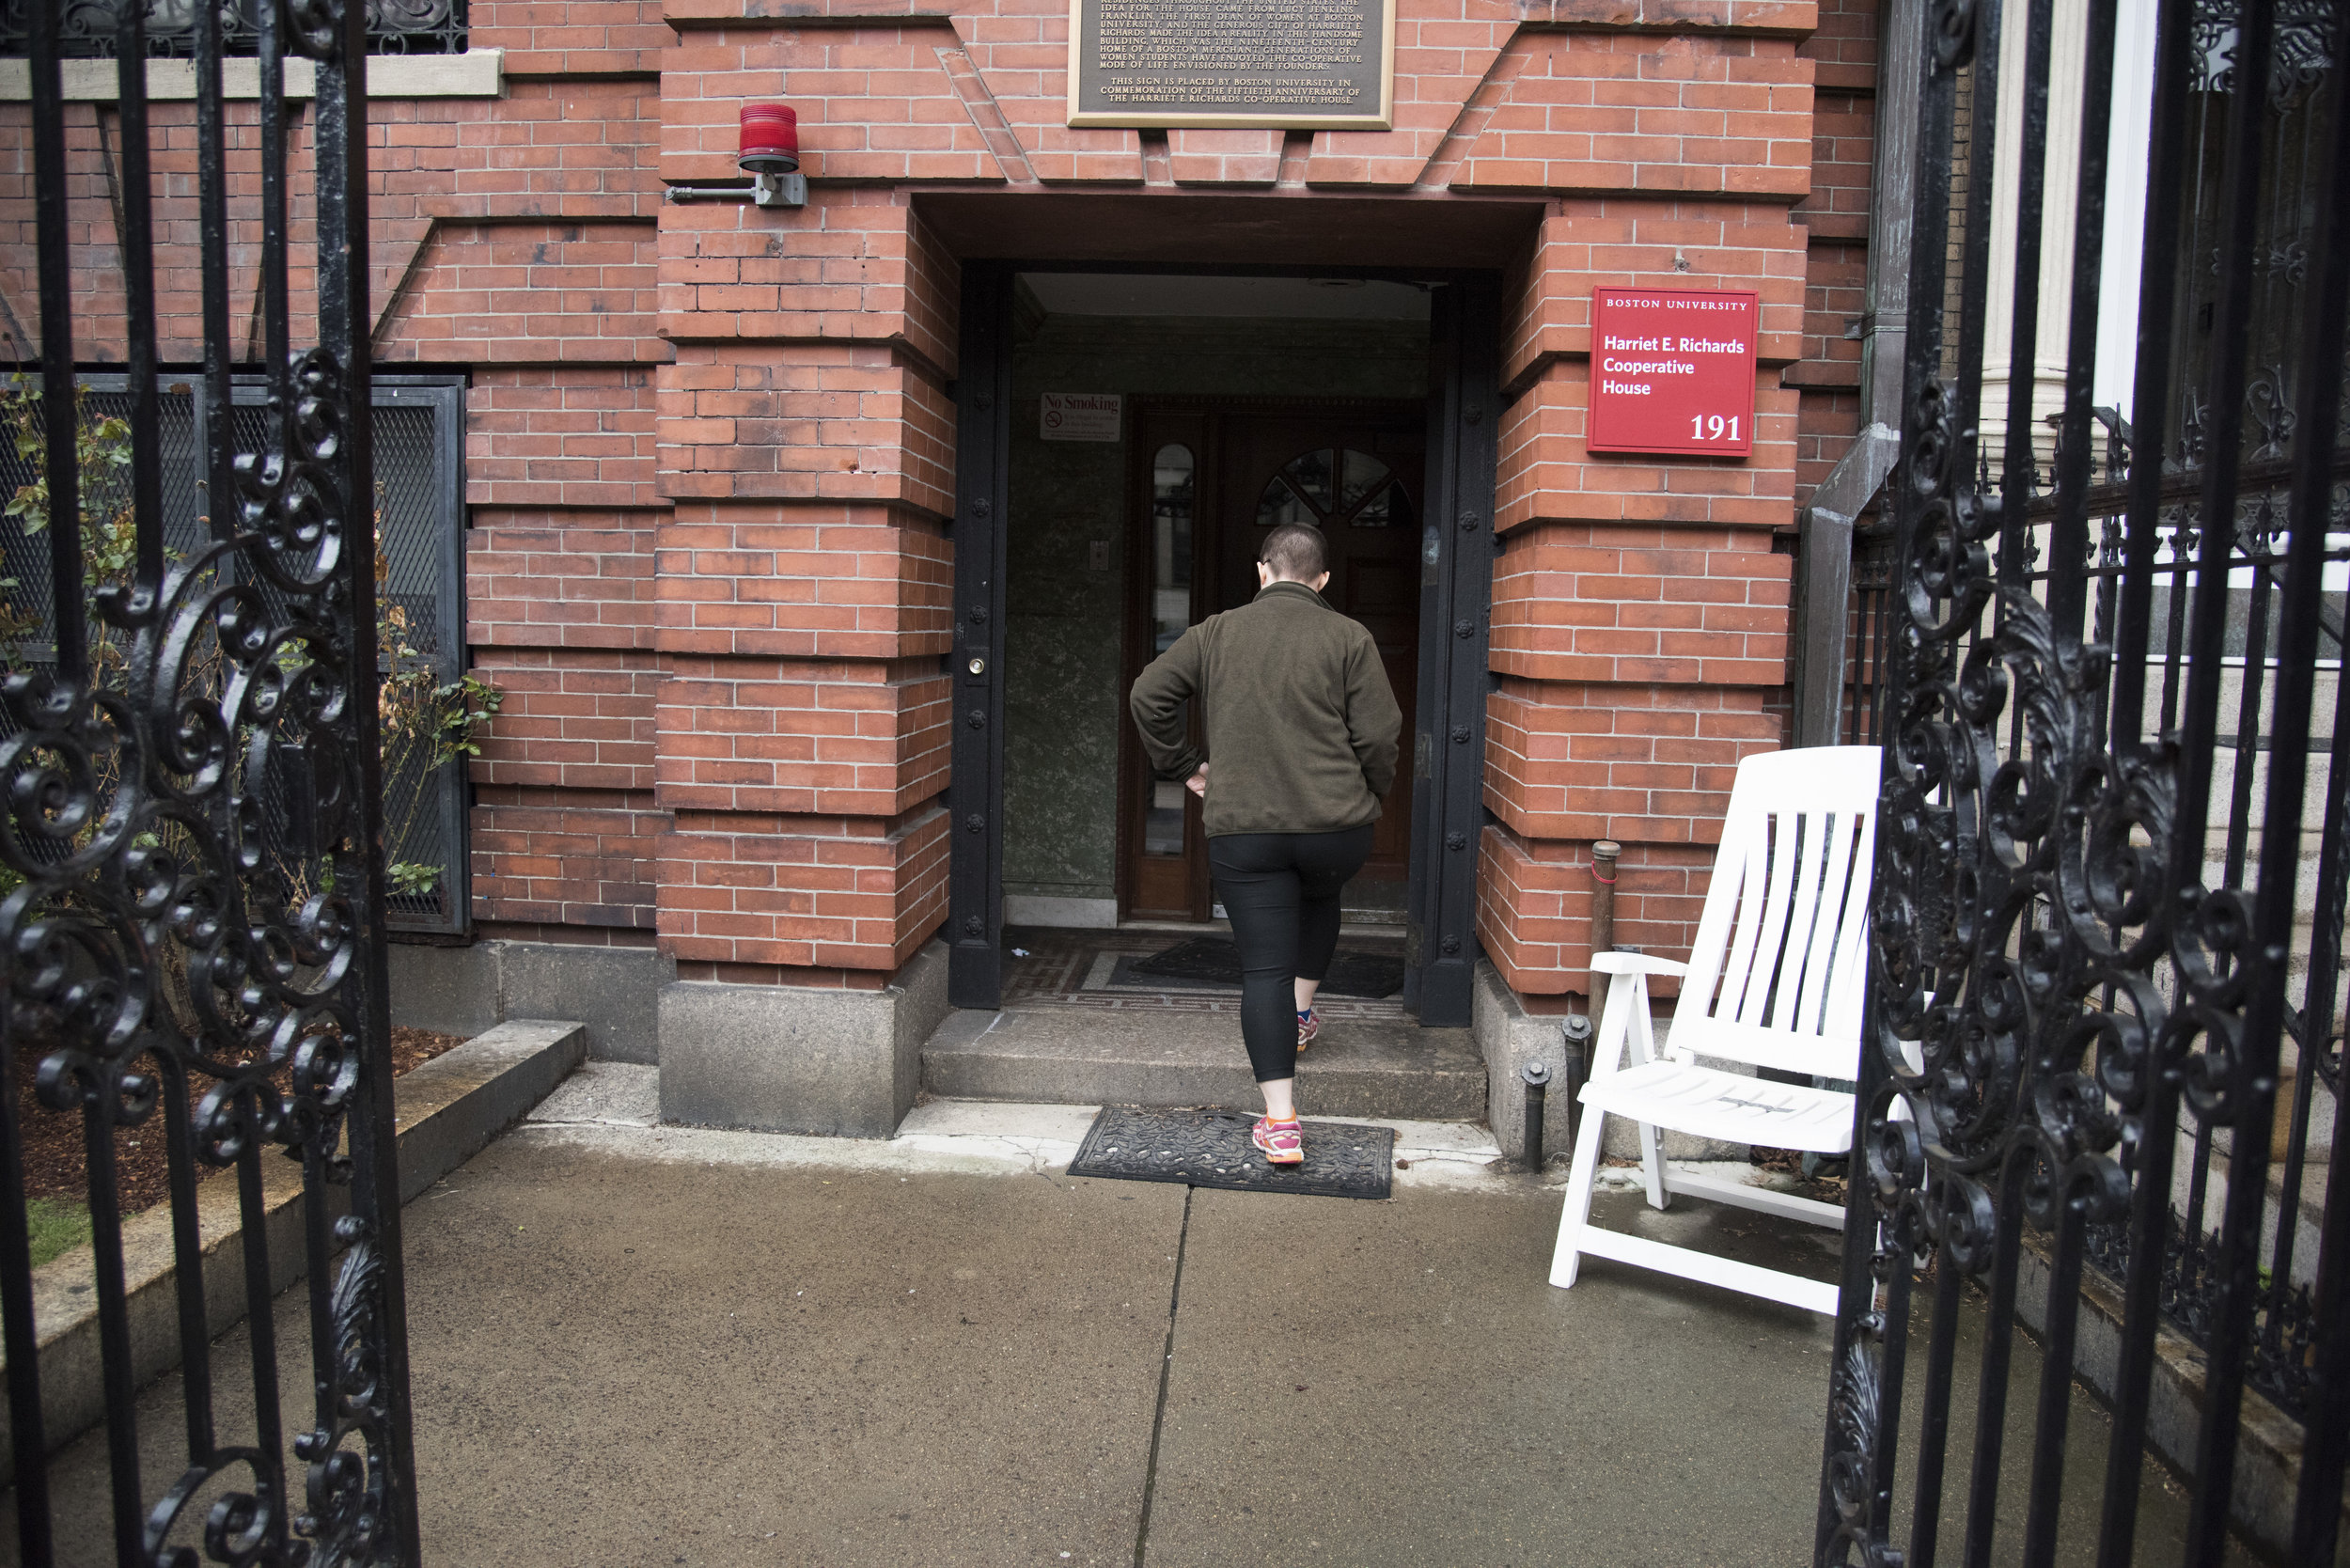 Ruby Rosenberg, a junior at Boston University, comes home to the Harriet E. Richards-- or HER-- house, the cooperative women's dormitory on BU's campus. The dorm, which has significantly reduced rent, was created in 1928 in part as a home for women who could not otherwise afford a university education.